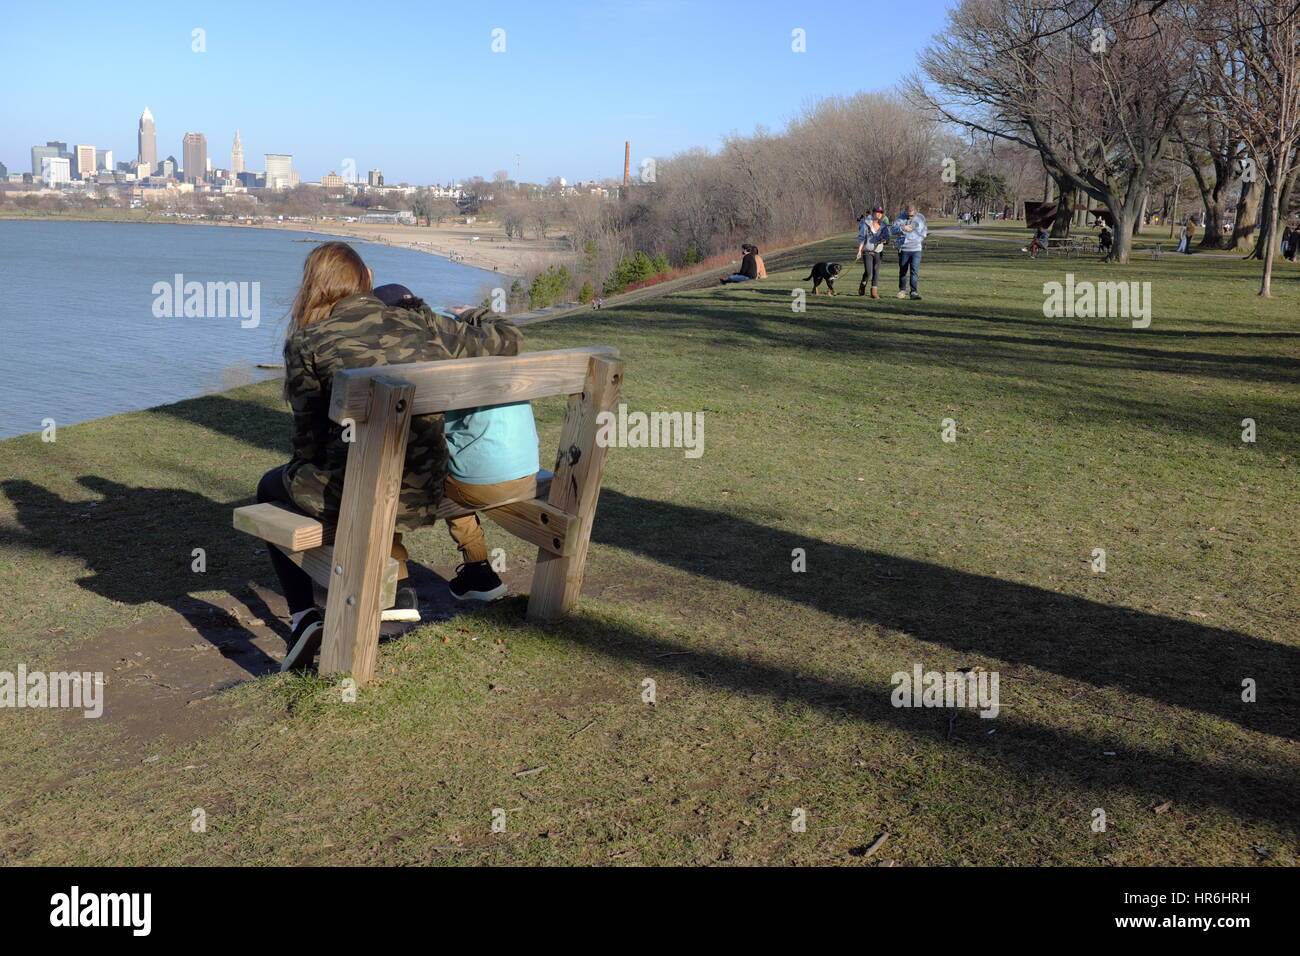 Cleveland, Ohio skyline view enjoyed by a couple at Edgewater Park on a rare warm February afternoon - Stock Image